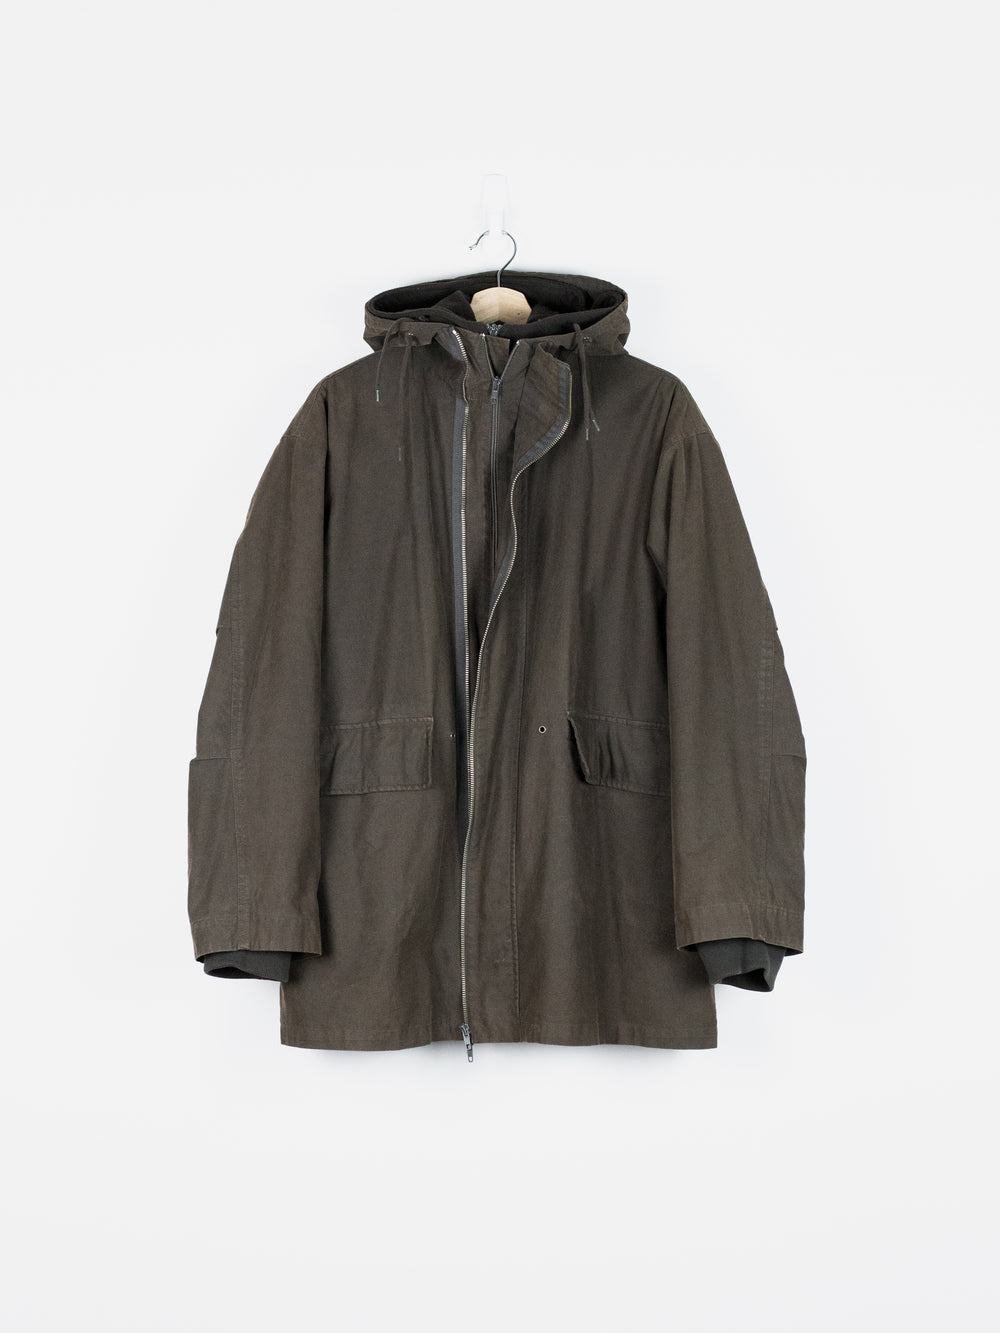 Helmut Lang AW98 Military Parka w/ Removable Fleece Lining